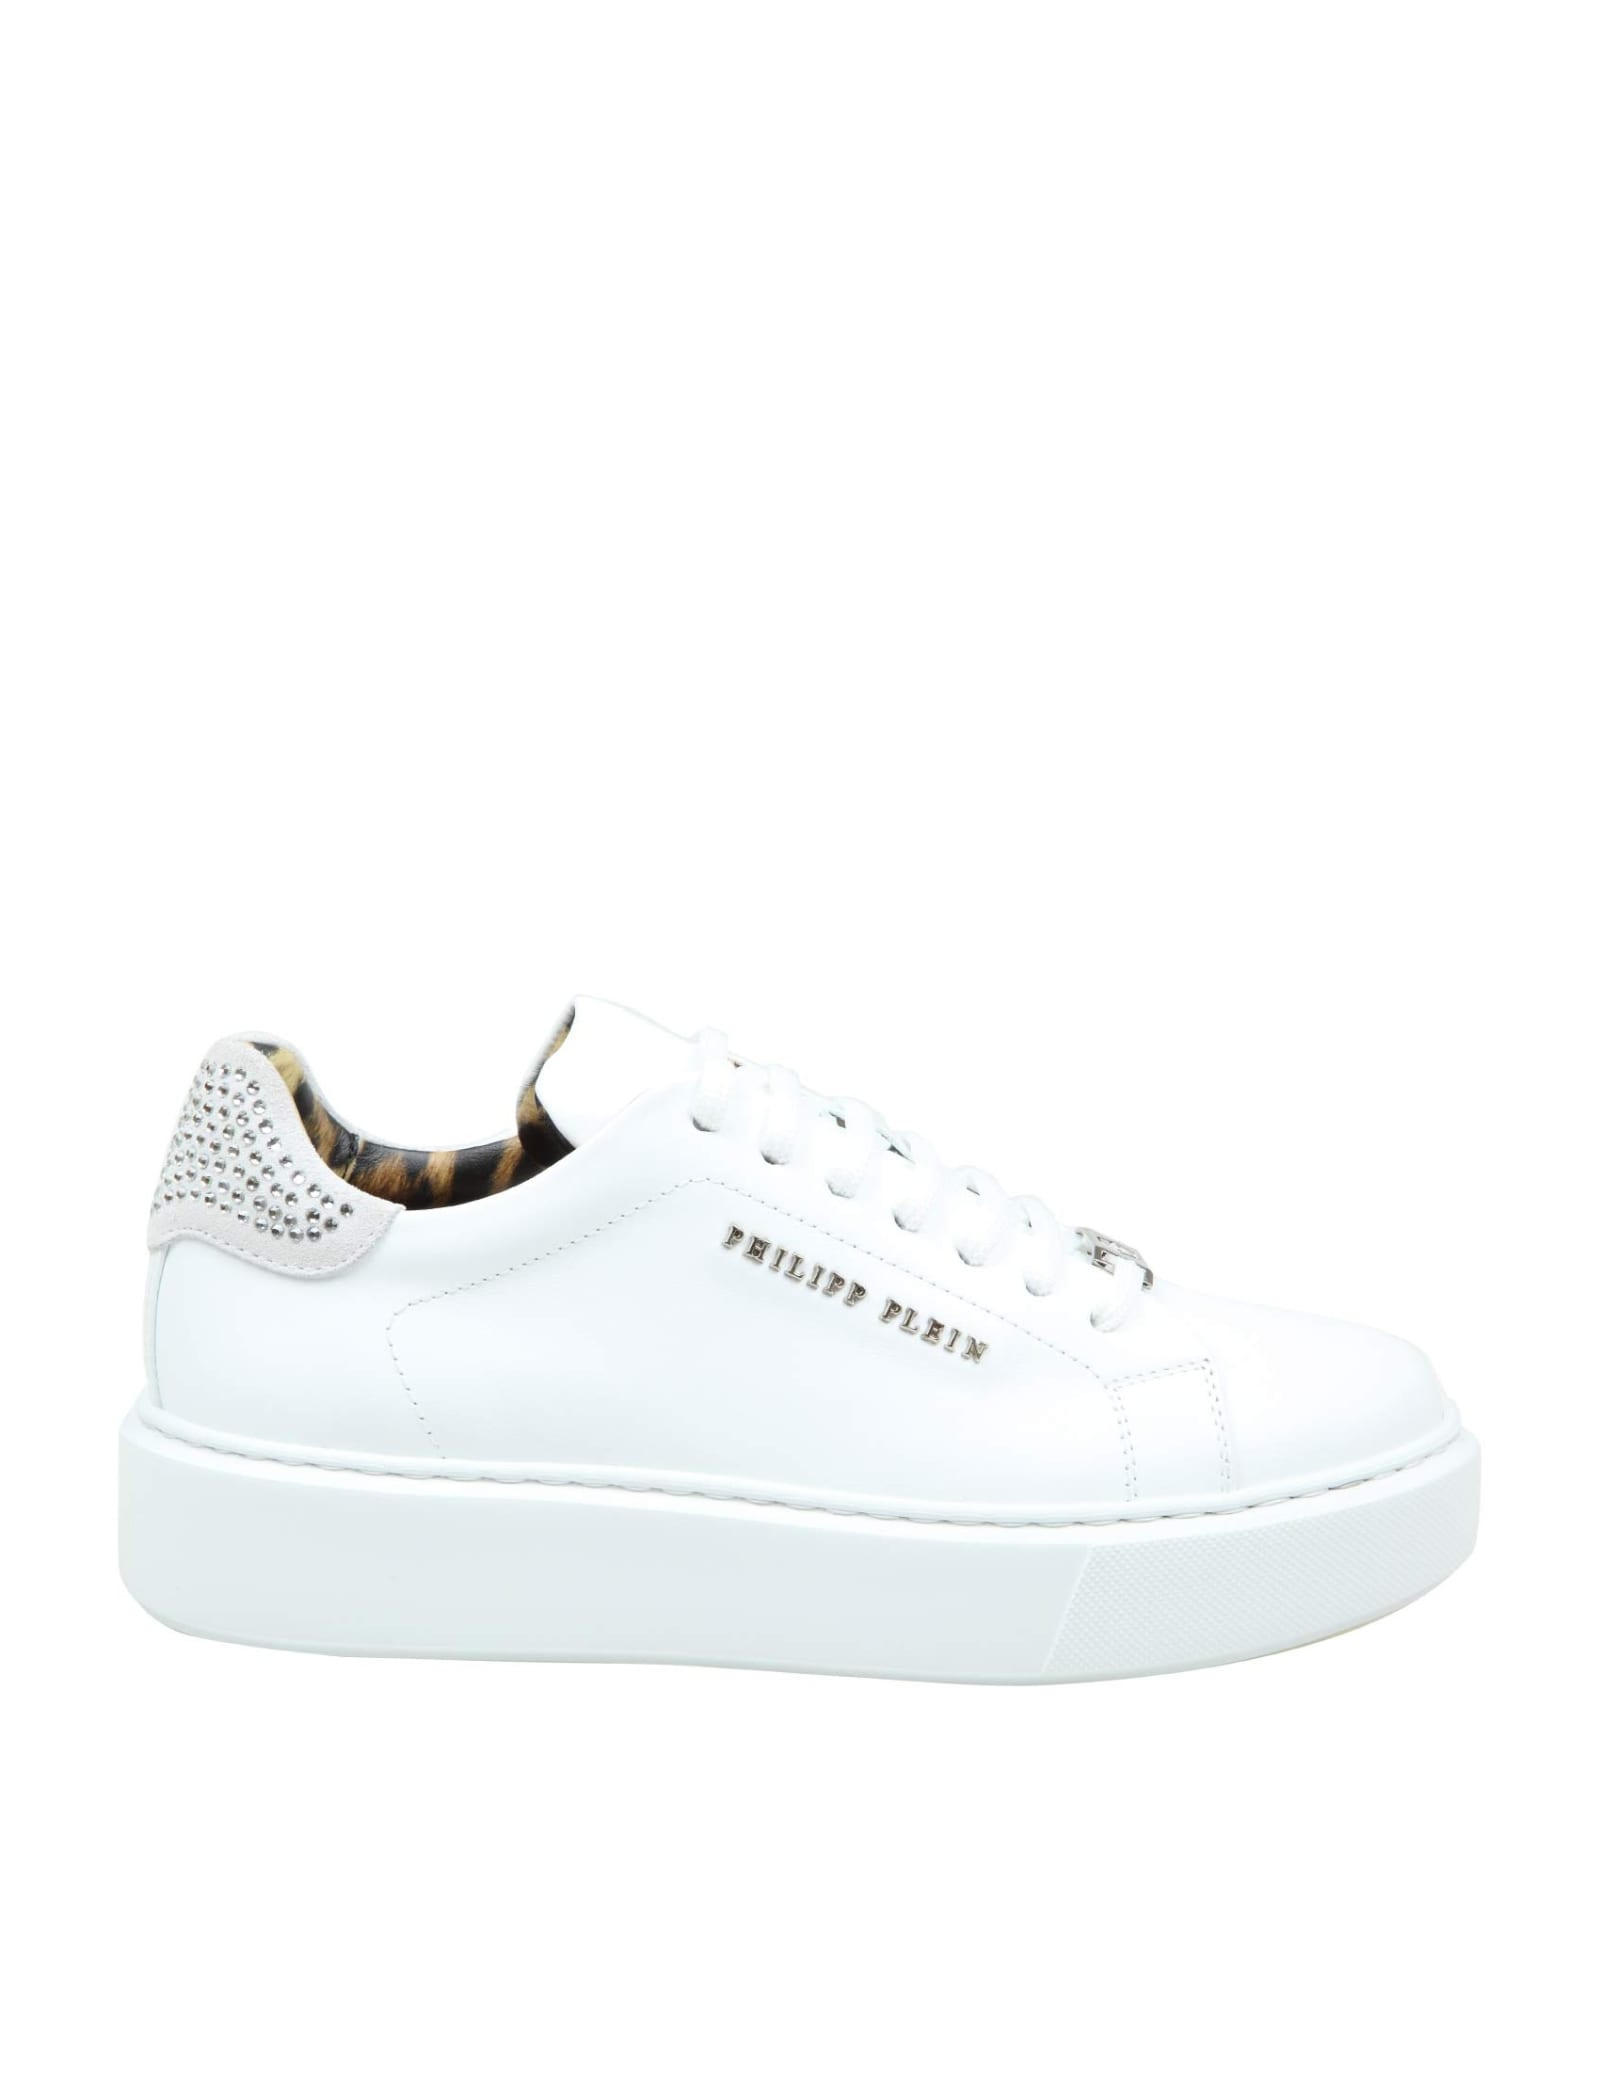 Philipp Plein SNEAKER LO-TOP IN LEATHER WITH CRYSTAL INSERTS